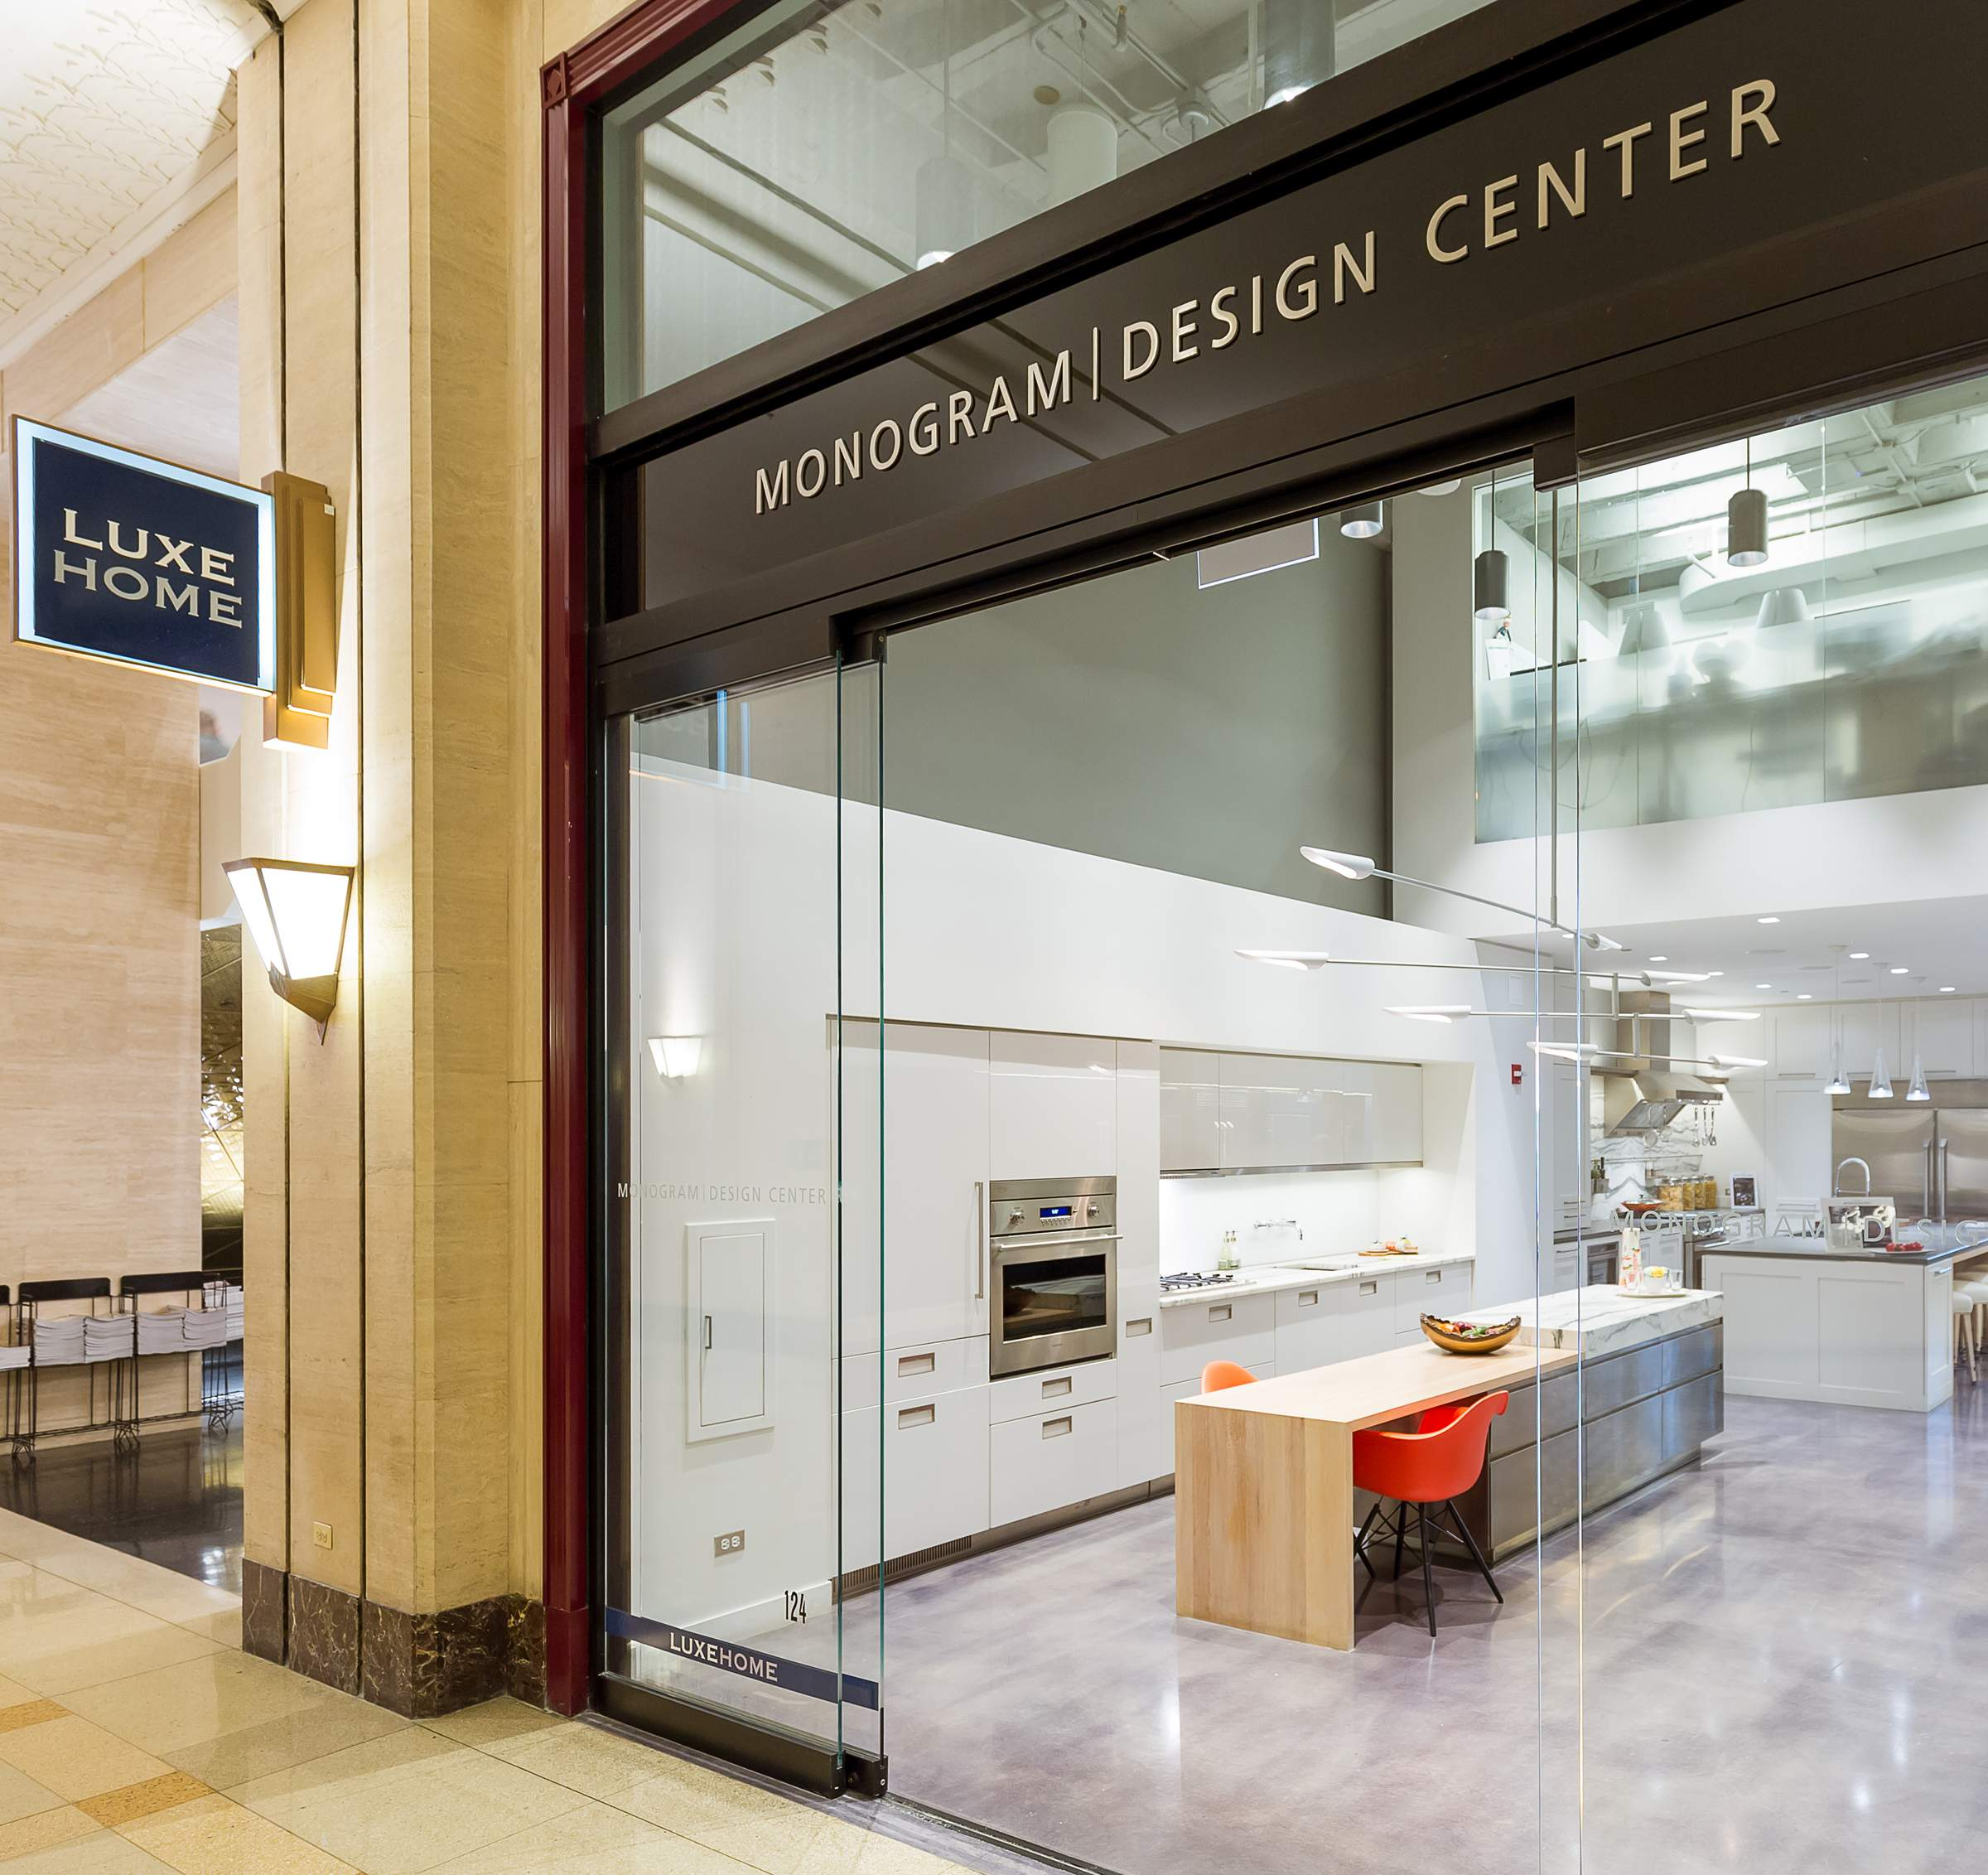 GE Monogram Design Center Chicago Flagship Showroom